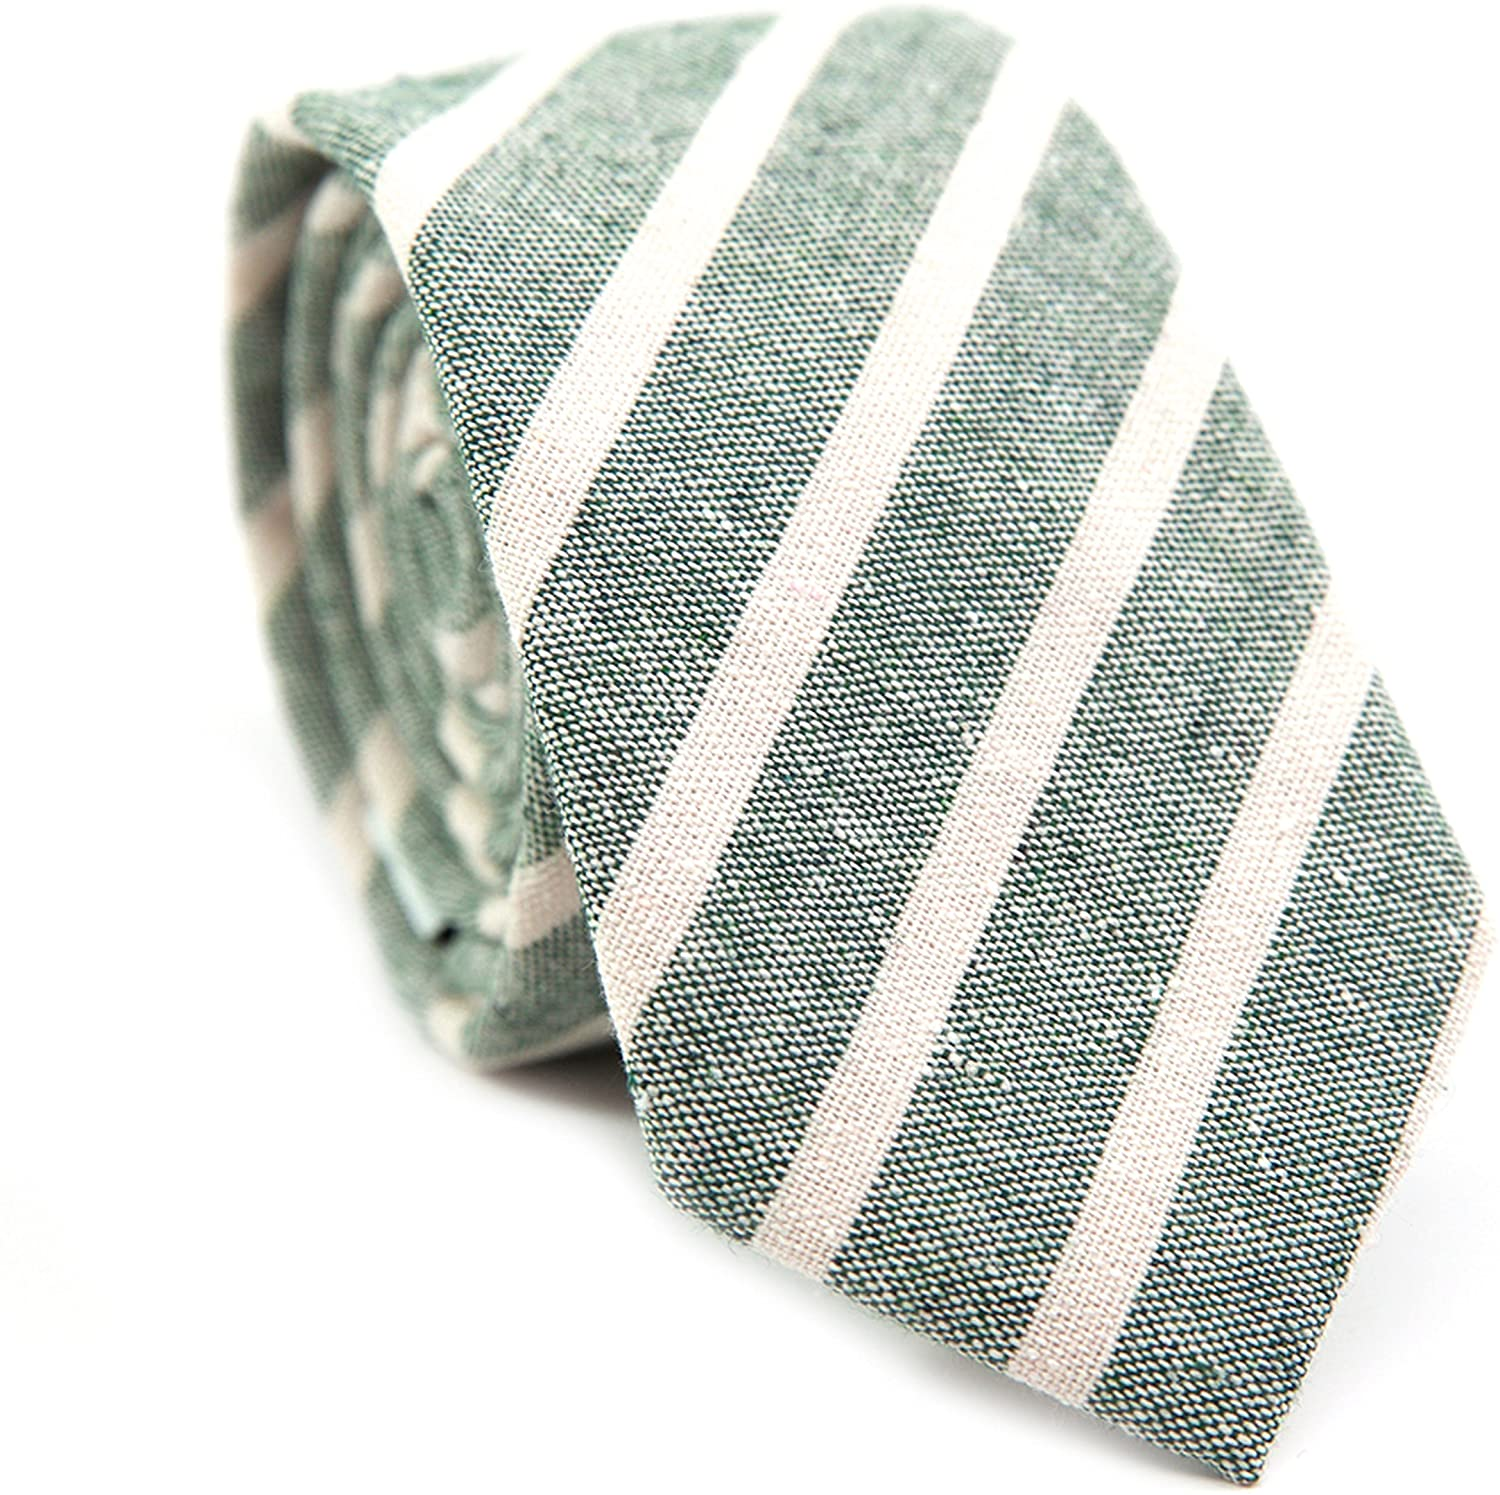 DAZI Men's Skinny Tie, Cotton Wool Linen Necktie, Great for Weddings, Groom, Groomsmen, Missions, Dances, Gifts.